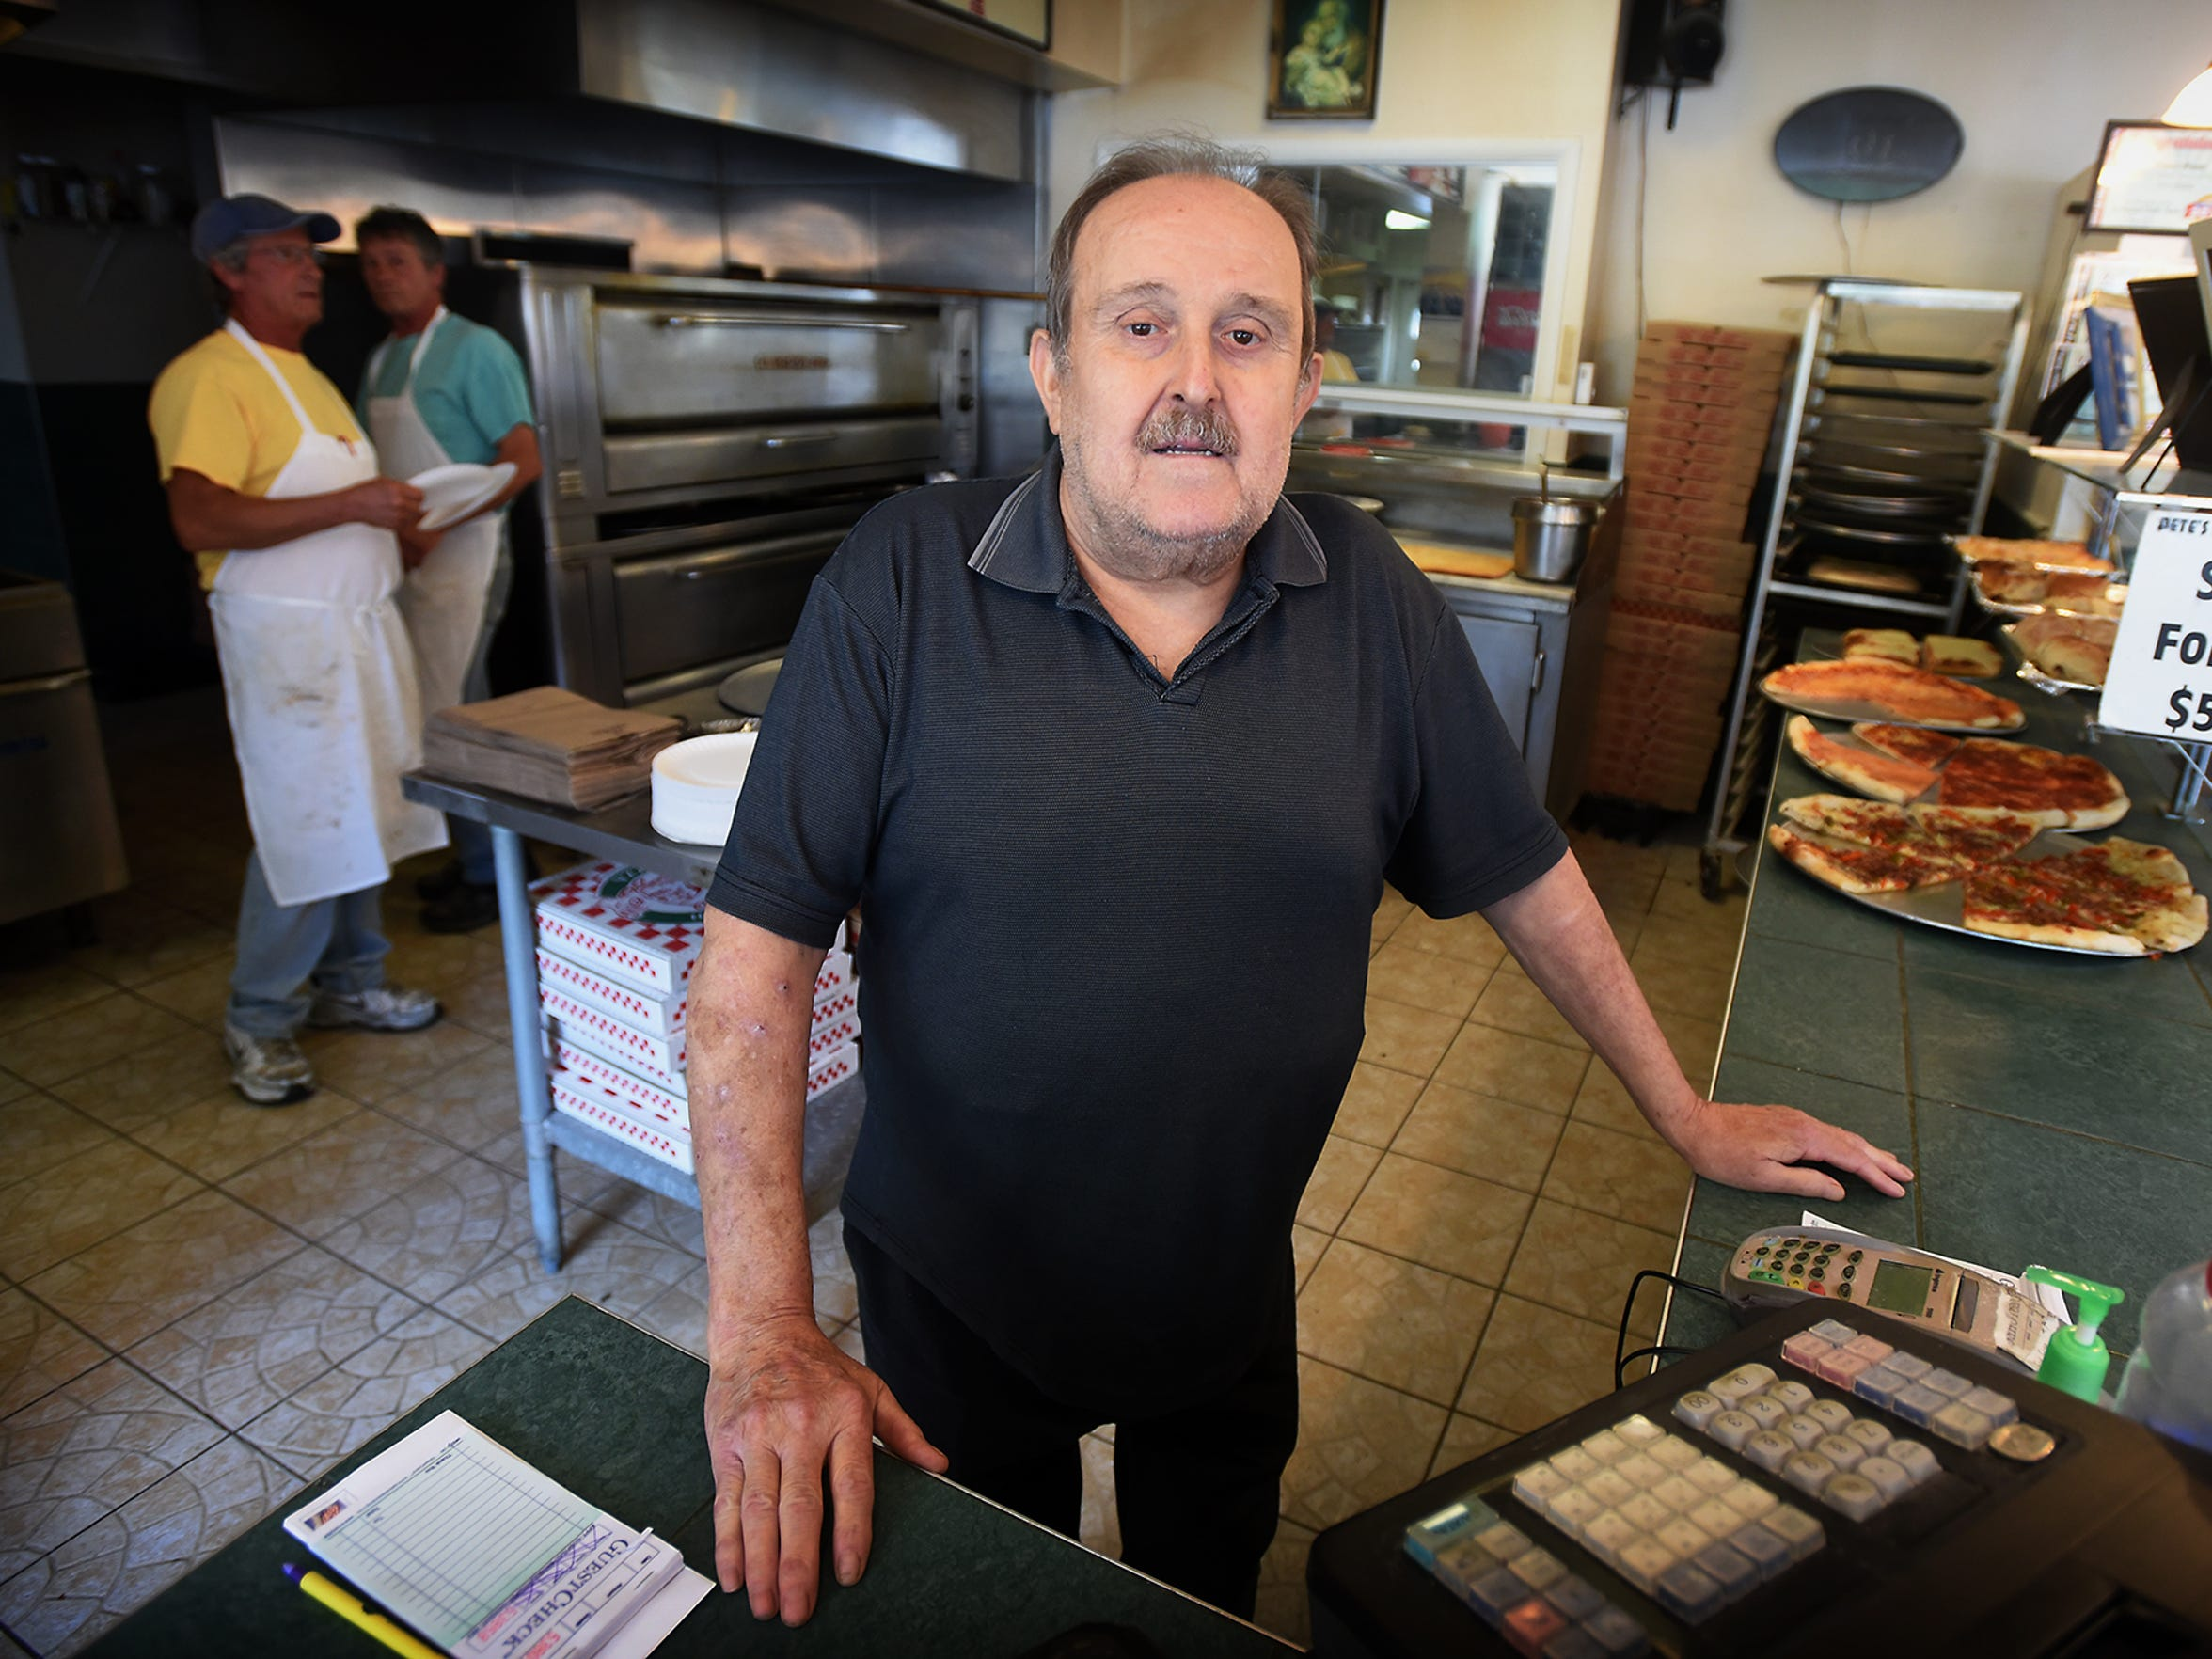 Pete Martorana, the owner of Pete's Pizza, opened his pizza shop at 1121 Quentin Road in Lebanon about 40 years ago when there was only one other shop in town.